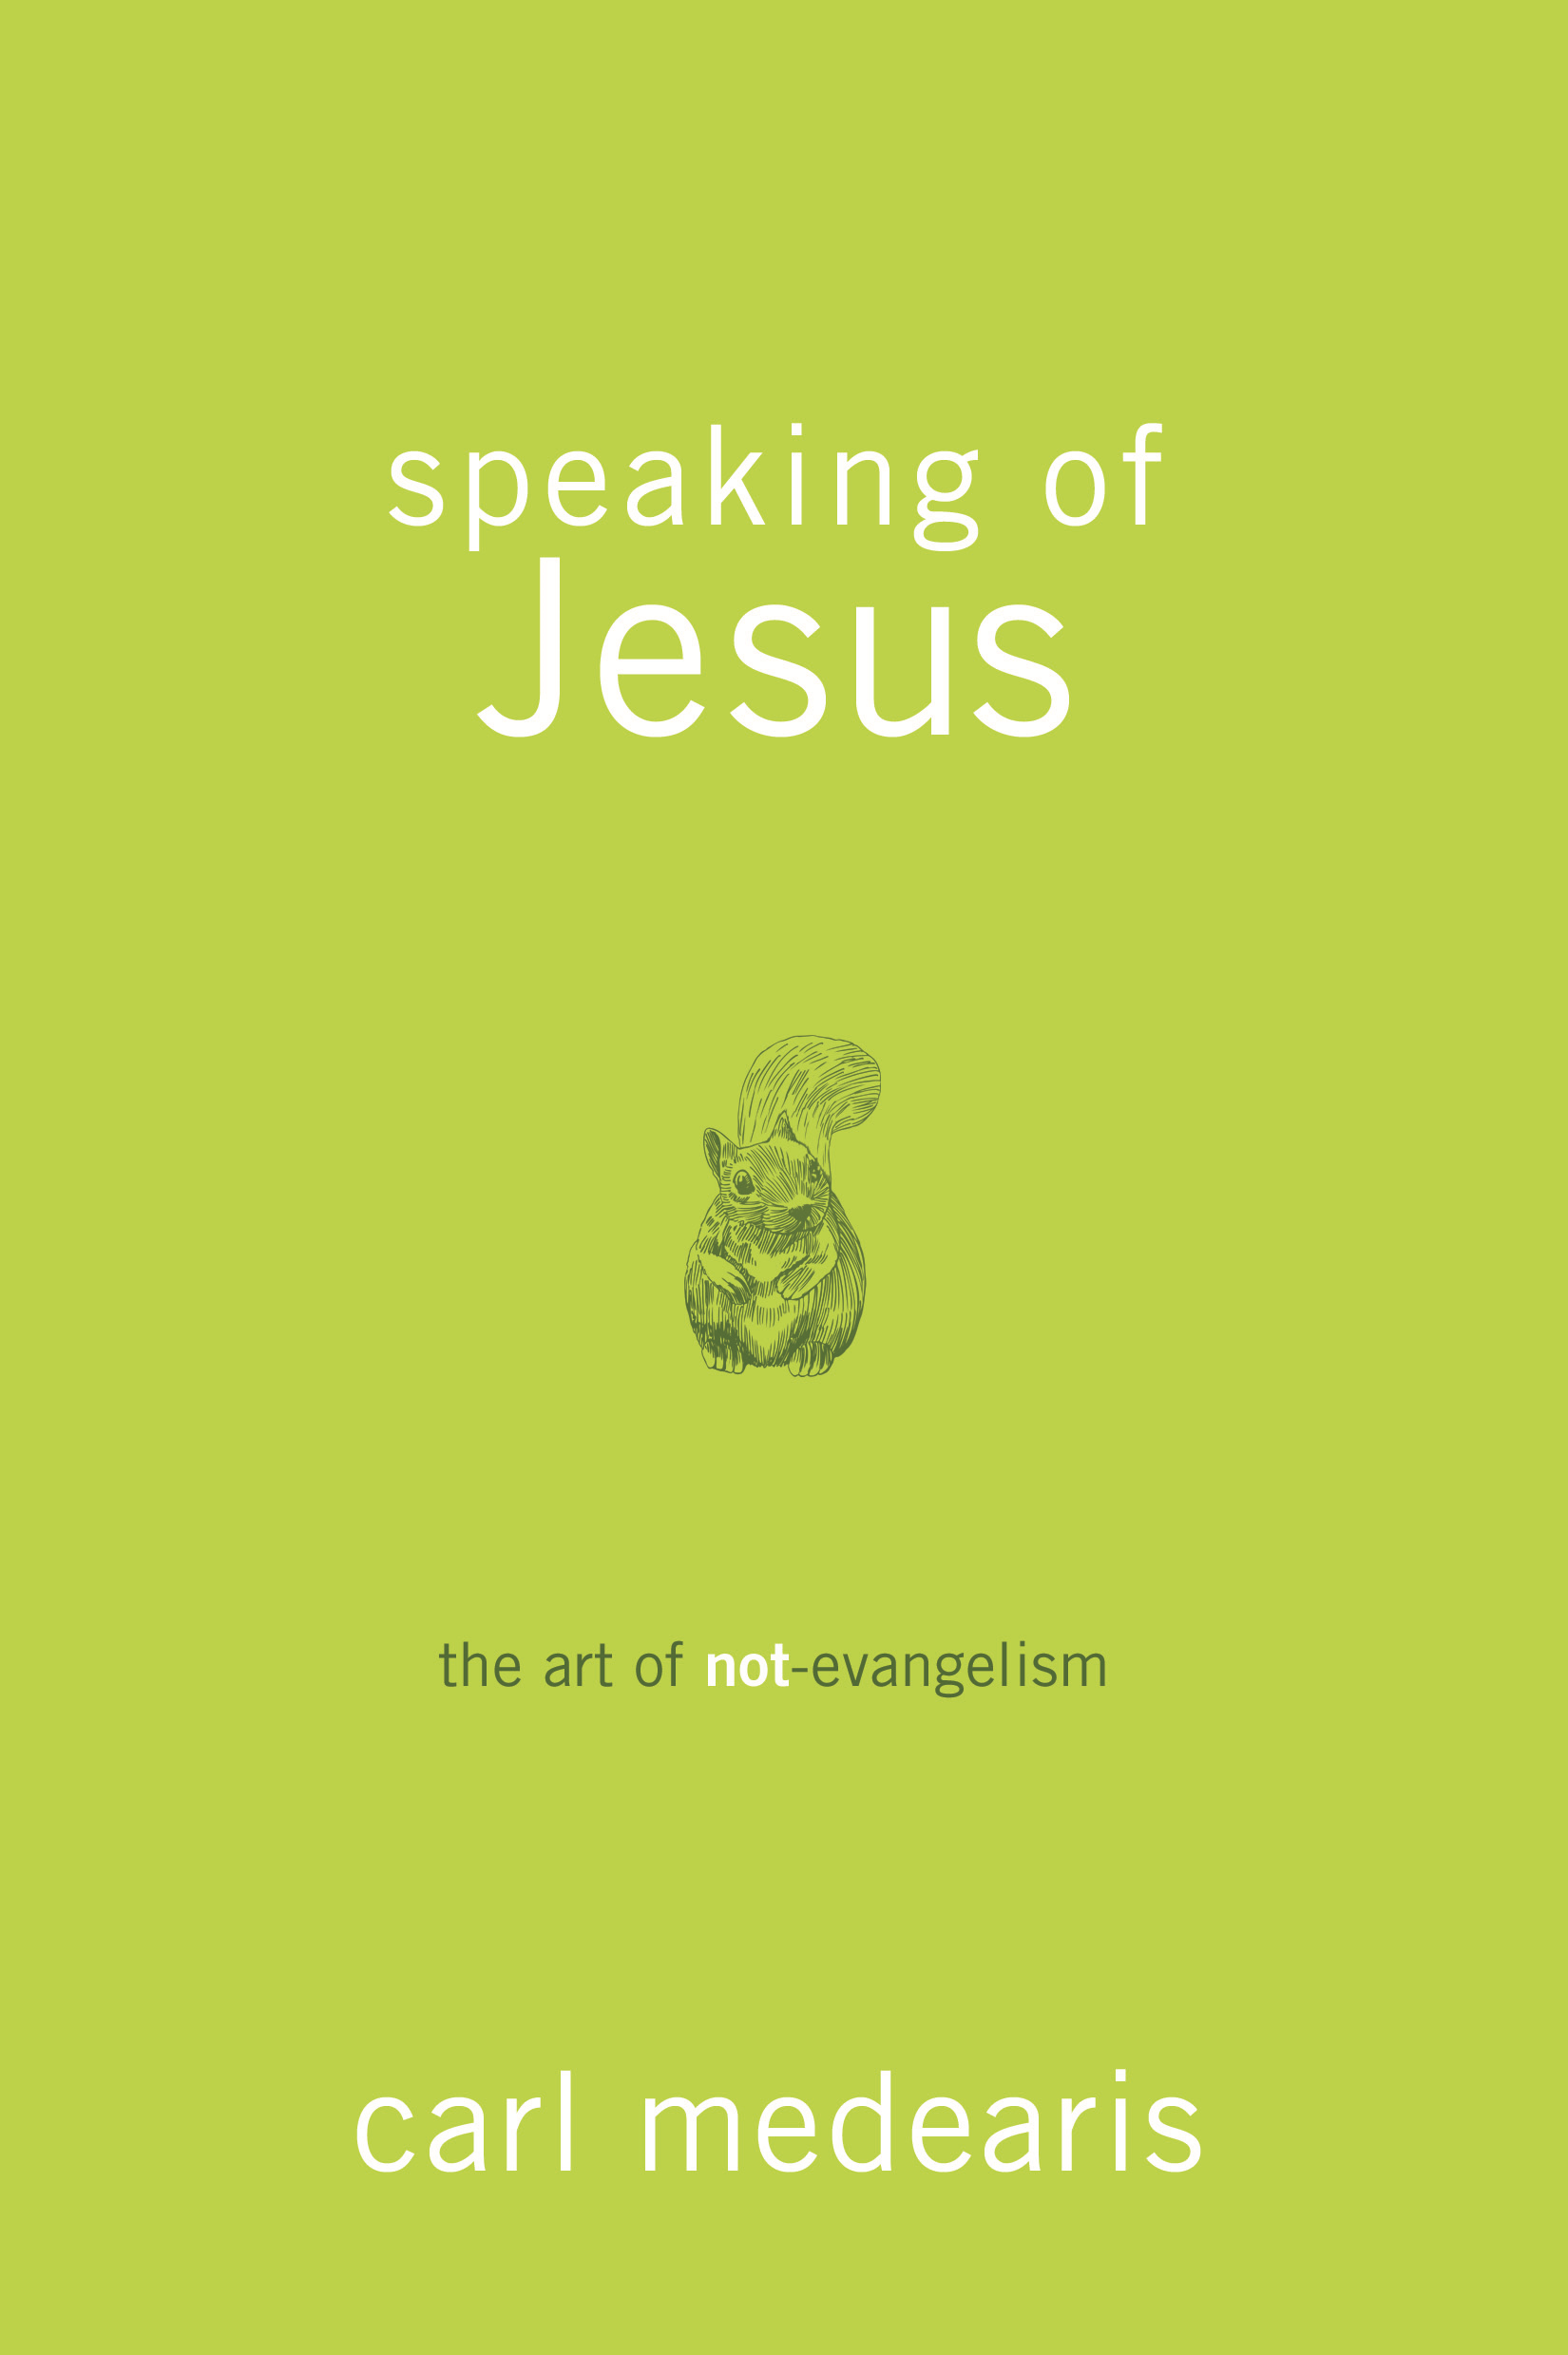 Speaking of Jesus: The Art of Not-Evangelism